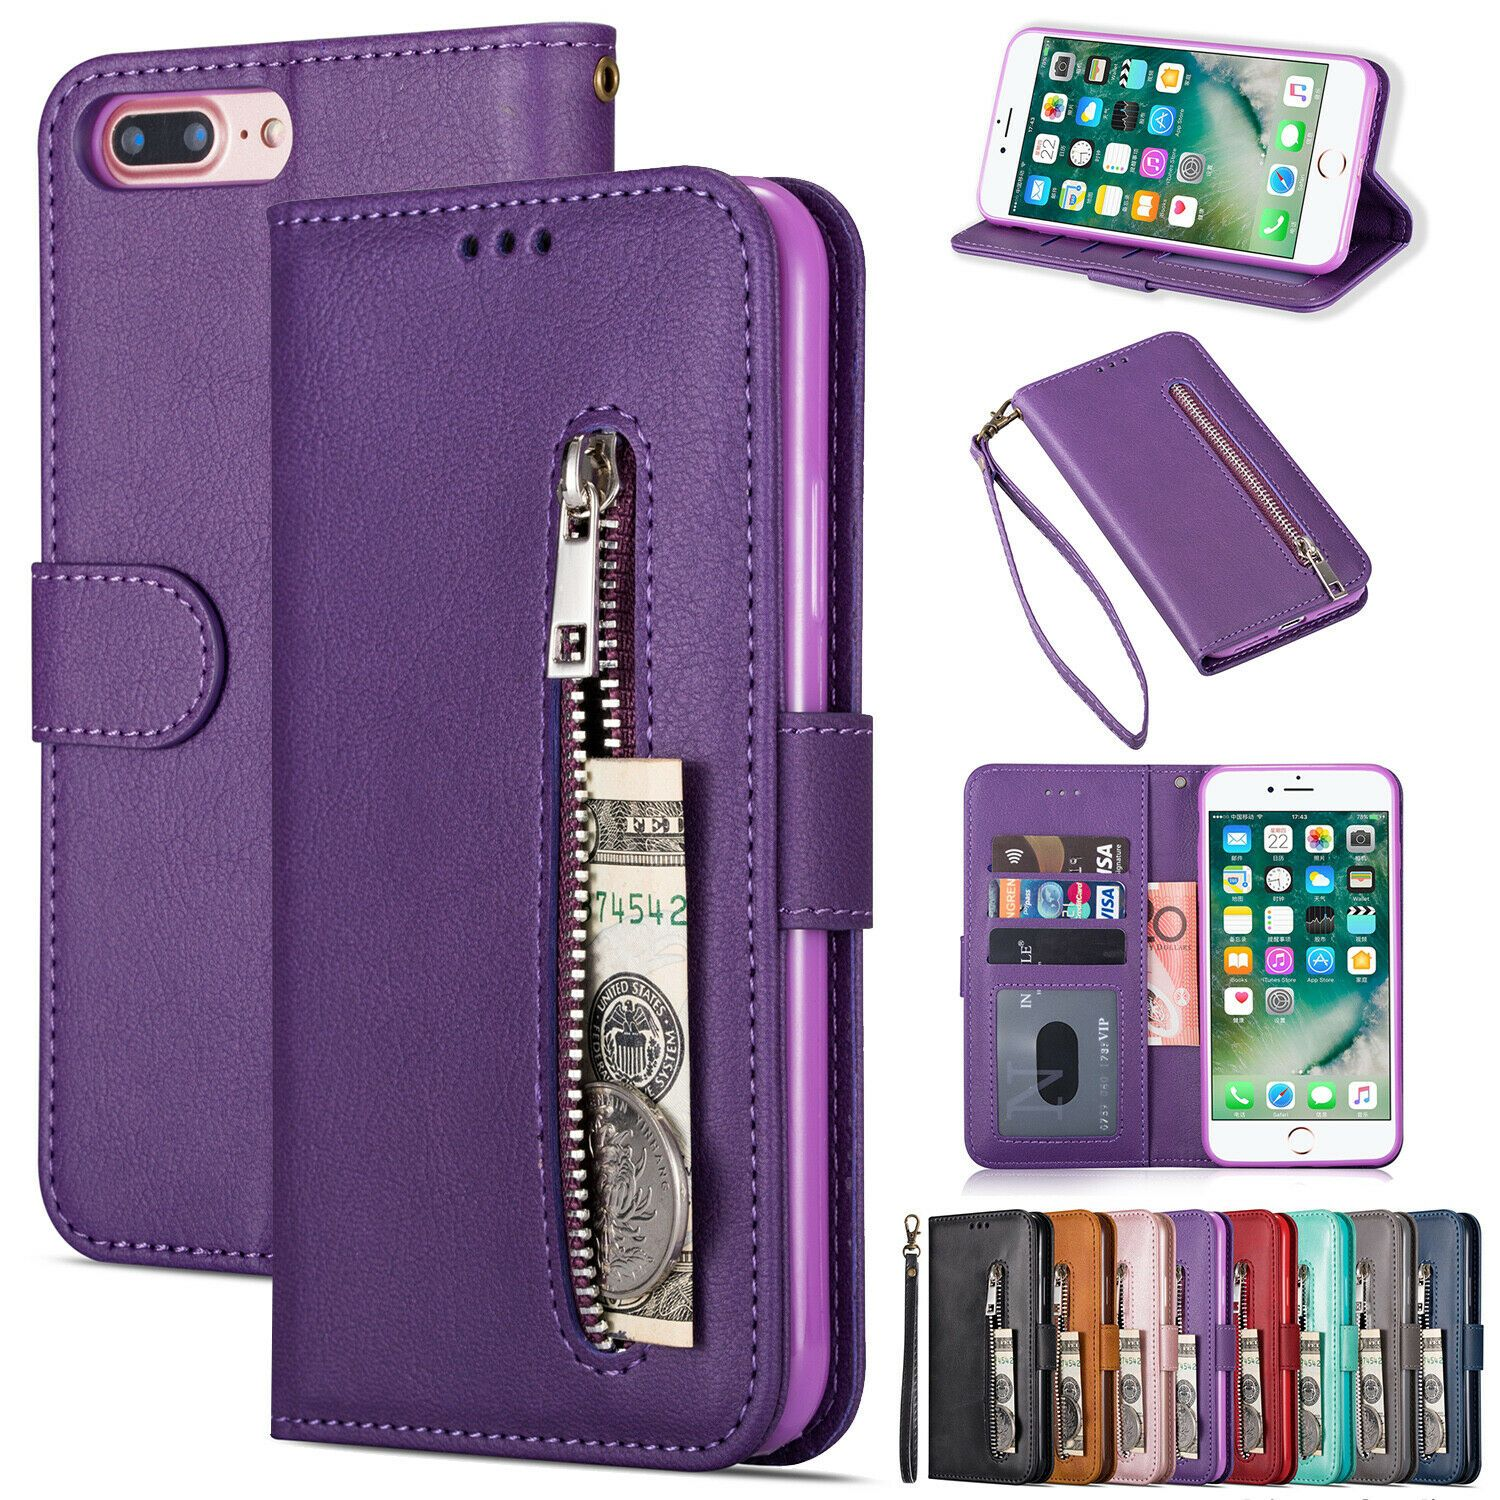 Apple Iphone 7 and 8 PLUS Phone Leather Flip Case Card Holder Magnetic Strap Wallet Cover Cerise Pink